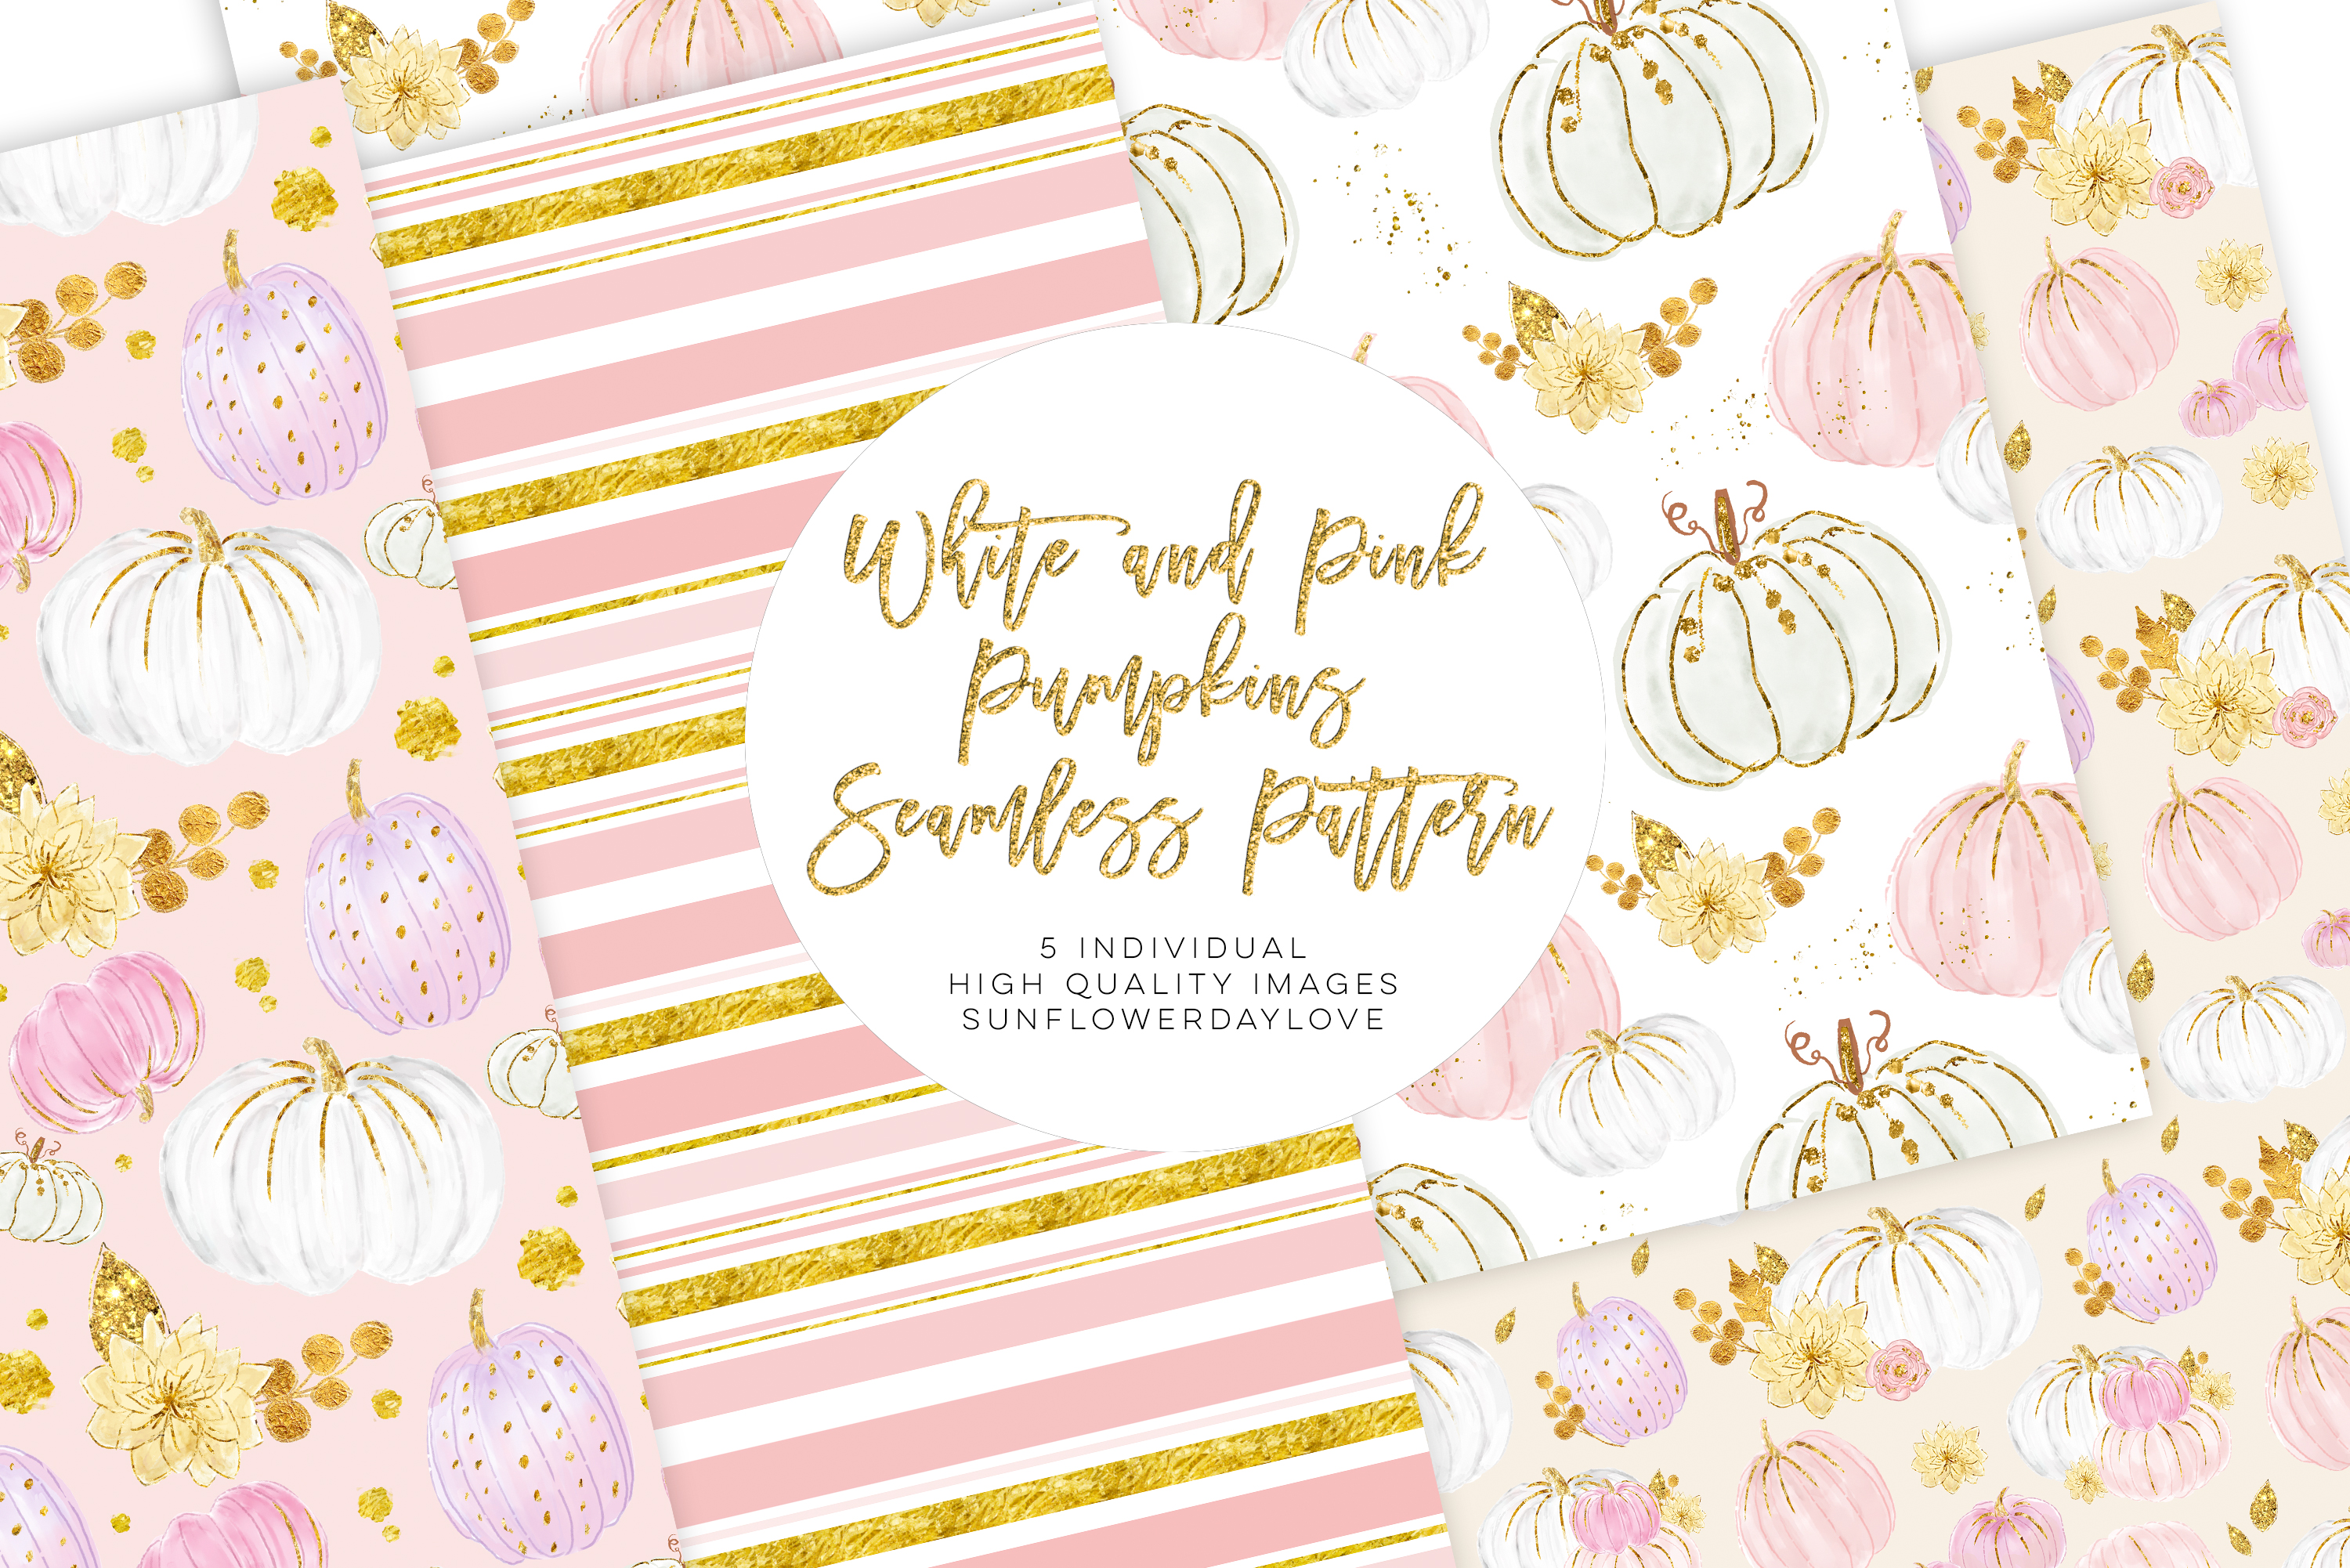 White and Pink Pumpkins Patterns, autumn pattern example image 2